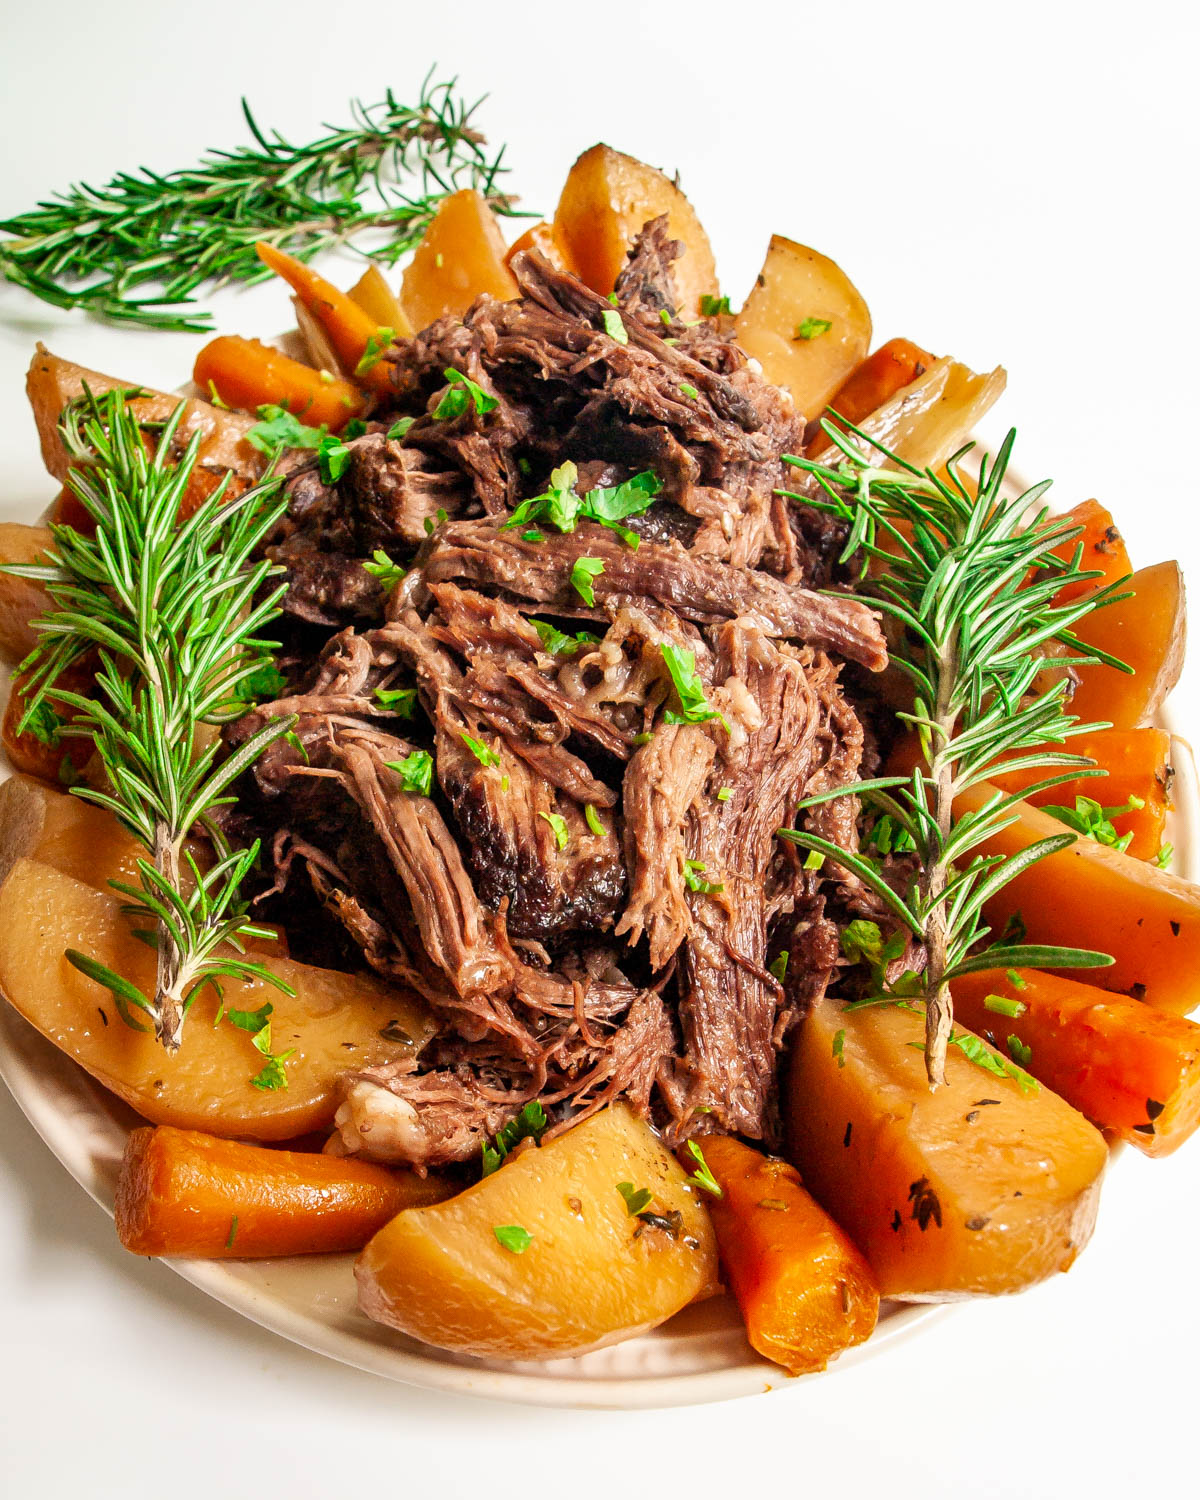 shredded roast in a platter with carrots and potatoes